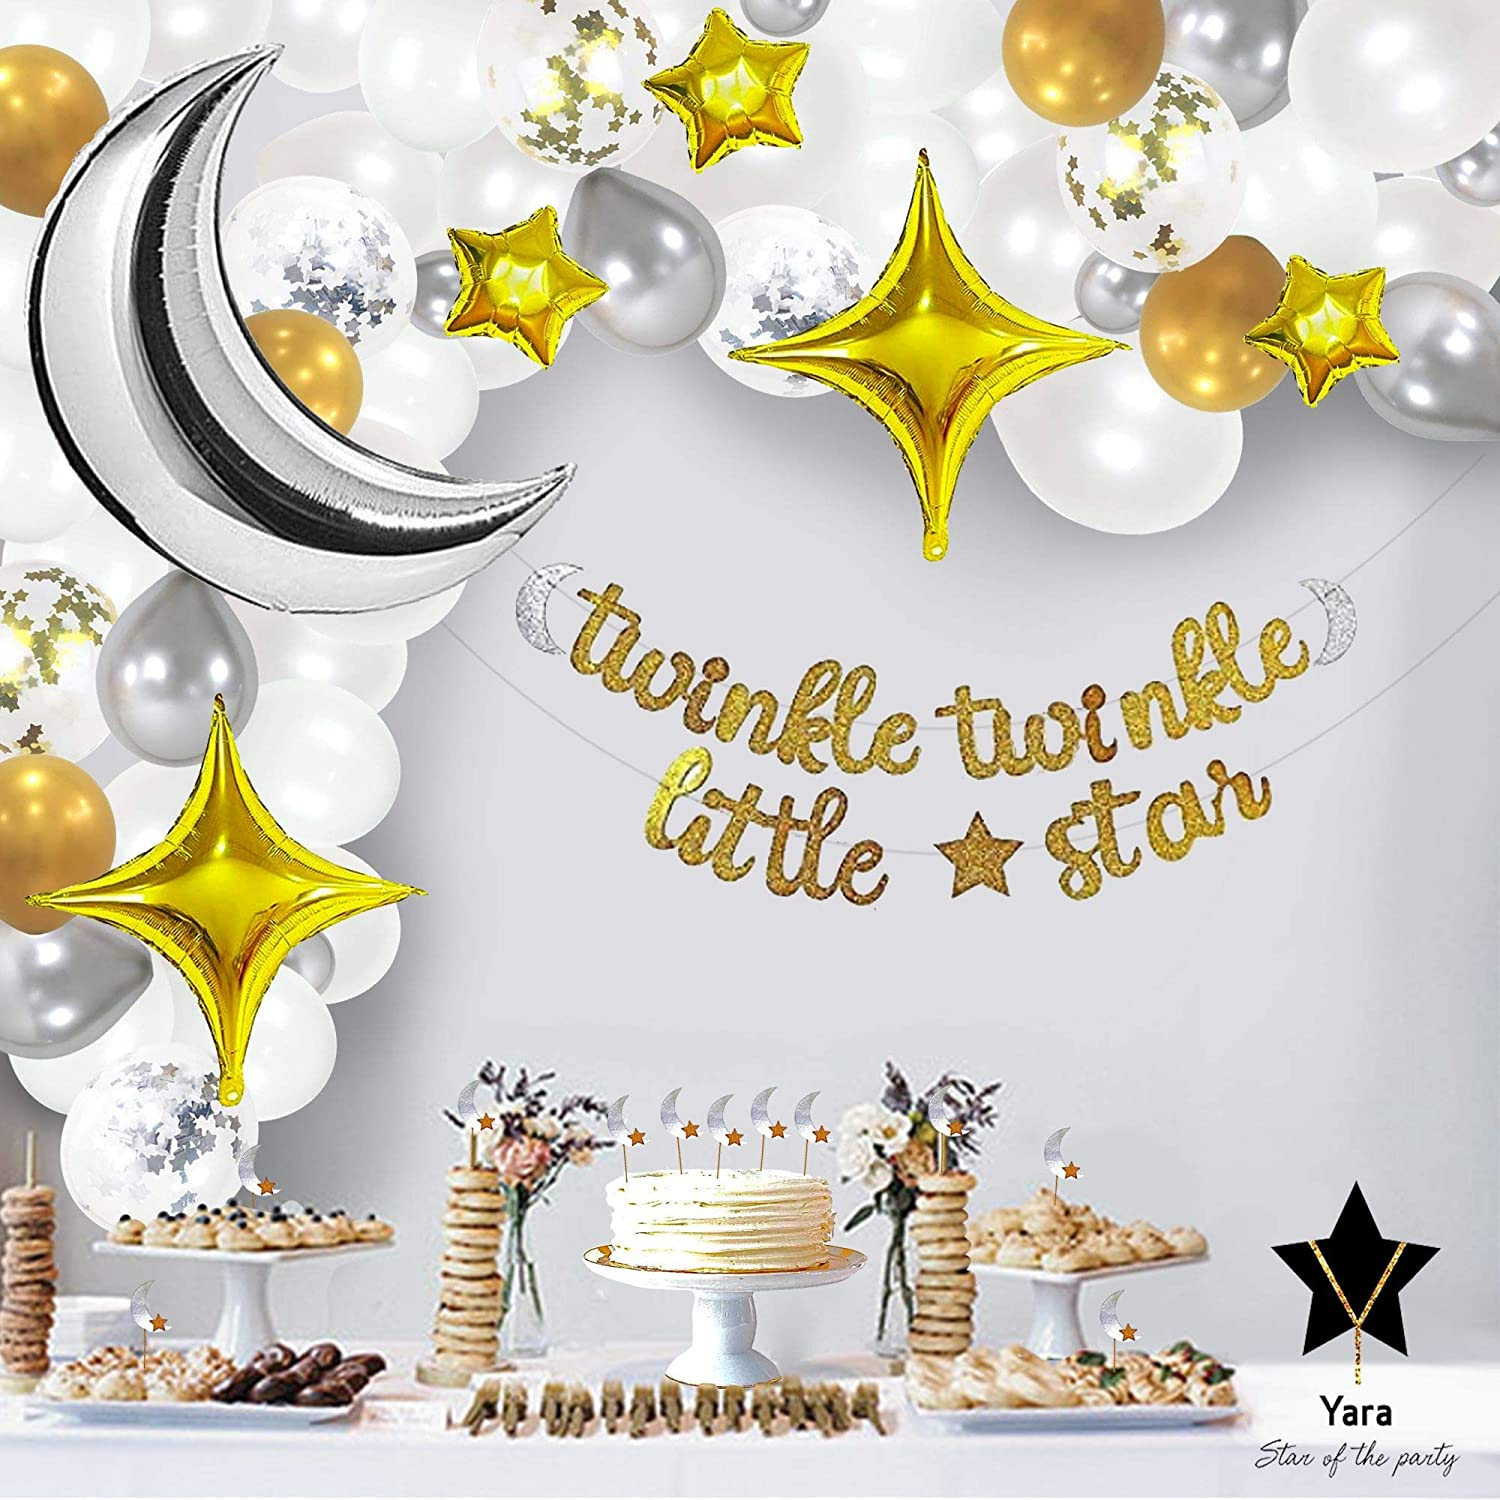 Yara Twinkle Twinkle Little Star Decorations For Baby Shower Or Birthday Boy or Girl|Gender Reveal Party Decoration|Neutral Balloon Garland Arch and Banner Kit|Moon and Stars Light Theme Decor Backdrop Set|Cupcake Toppers|White Silver Gold Balloons Supplies